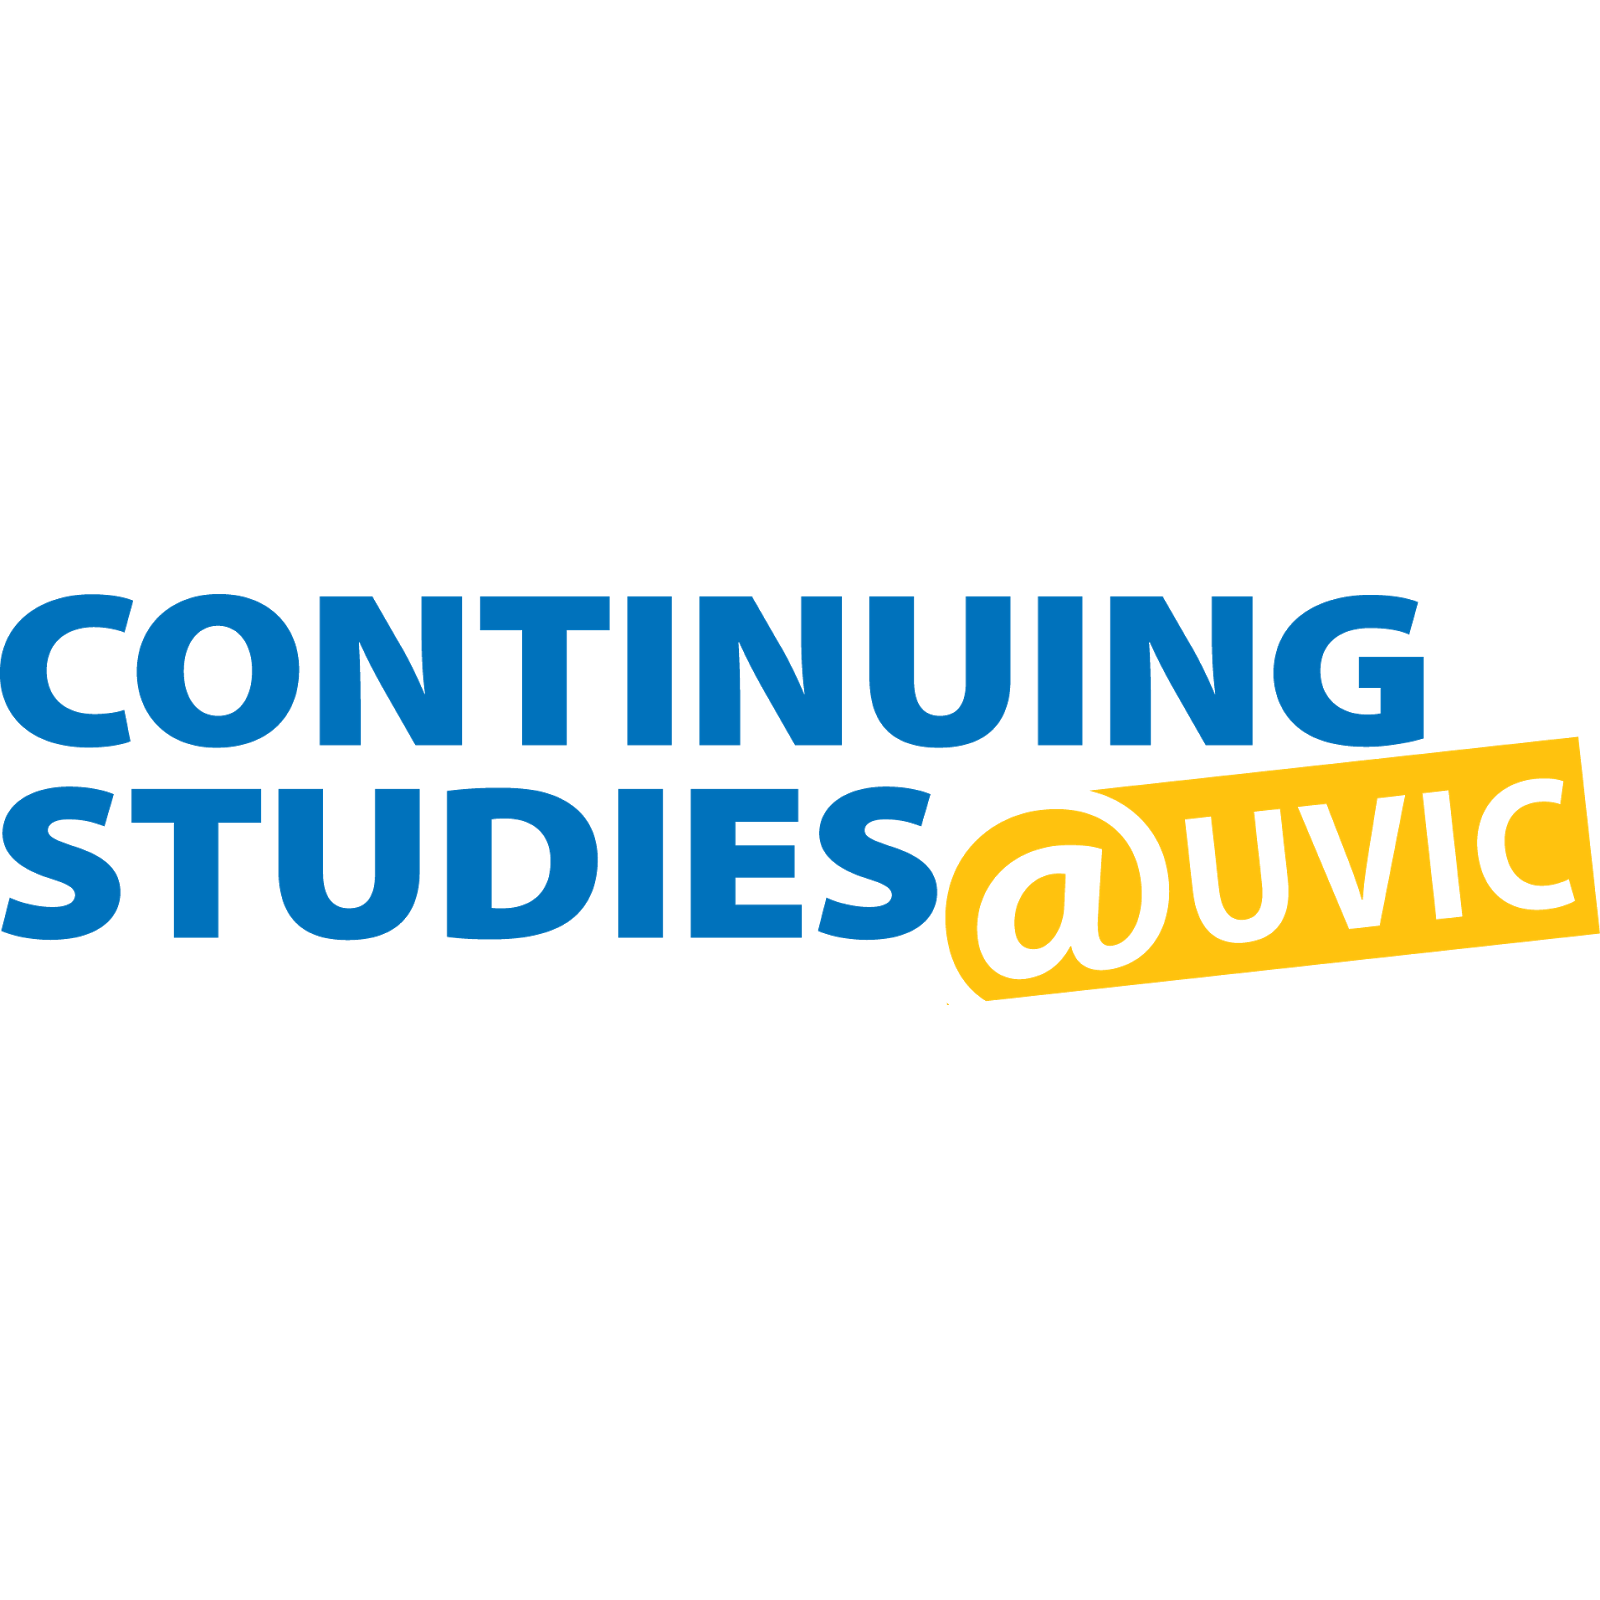 UVic Division of Continuing Studies